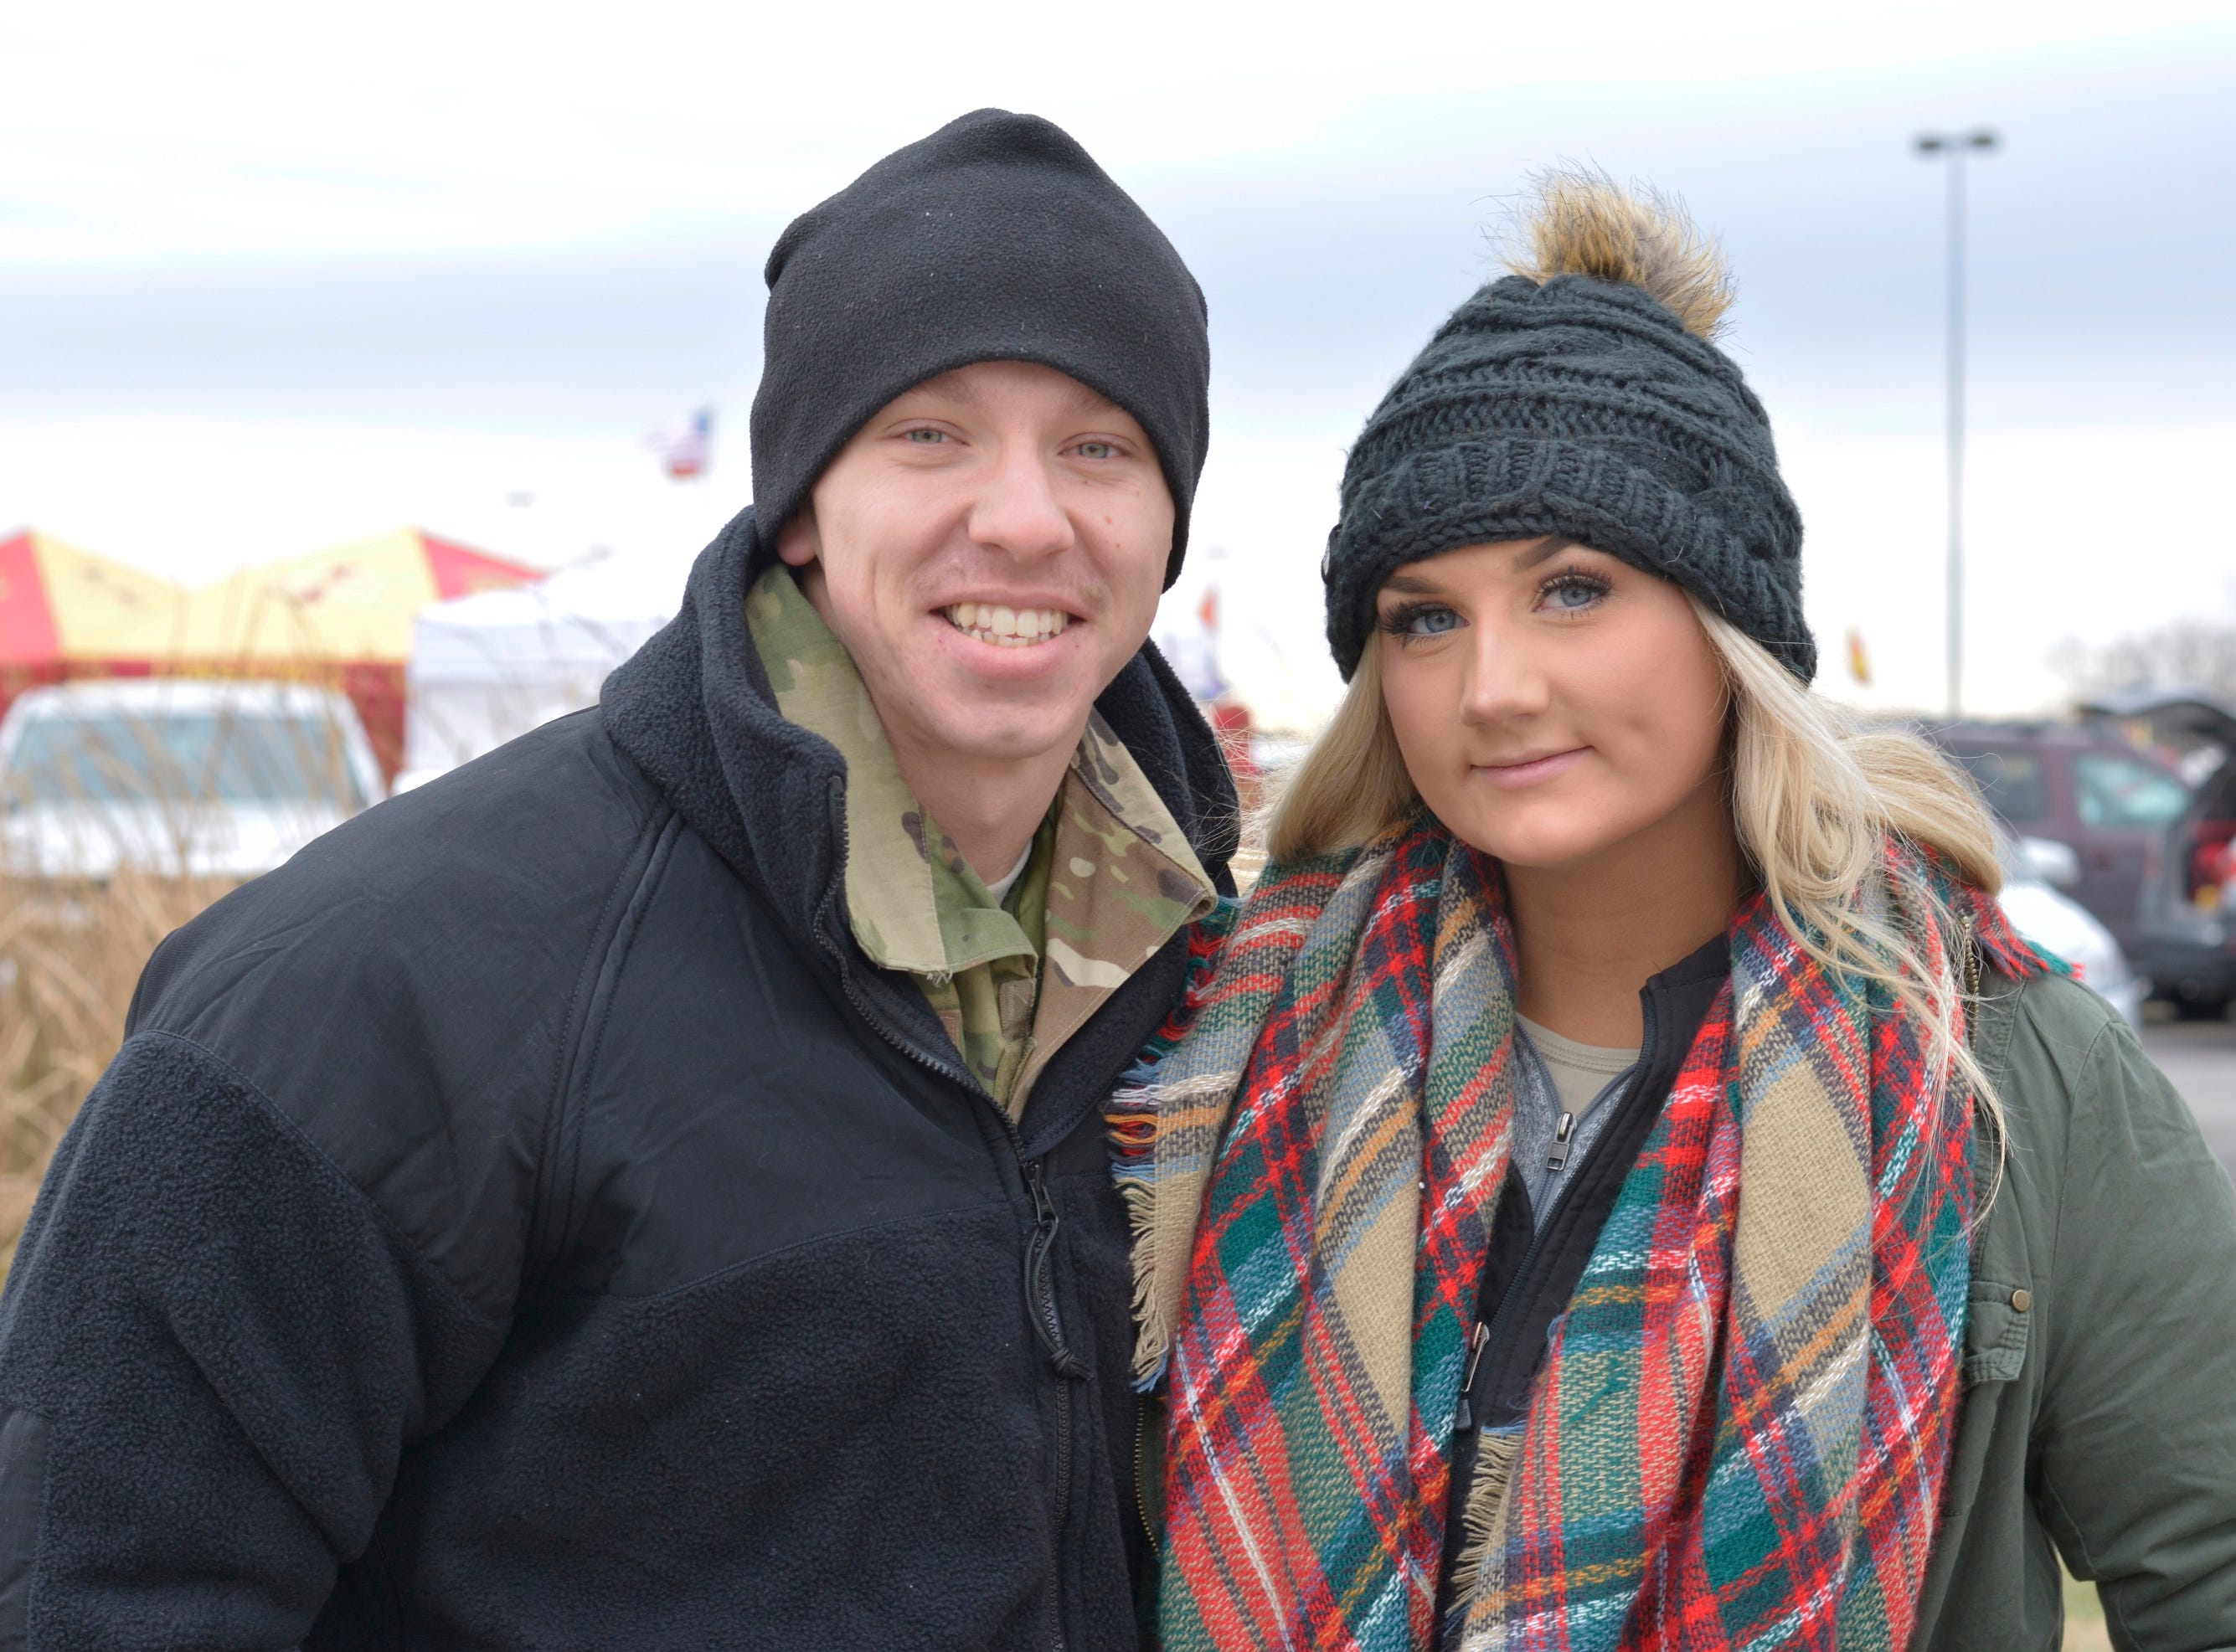 Ryan Hansen and Skylar Armstrong before the Iowa State University football game against Baylor in Ames on Nov. 10.